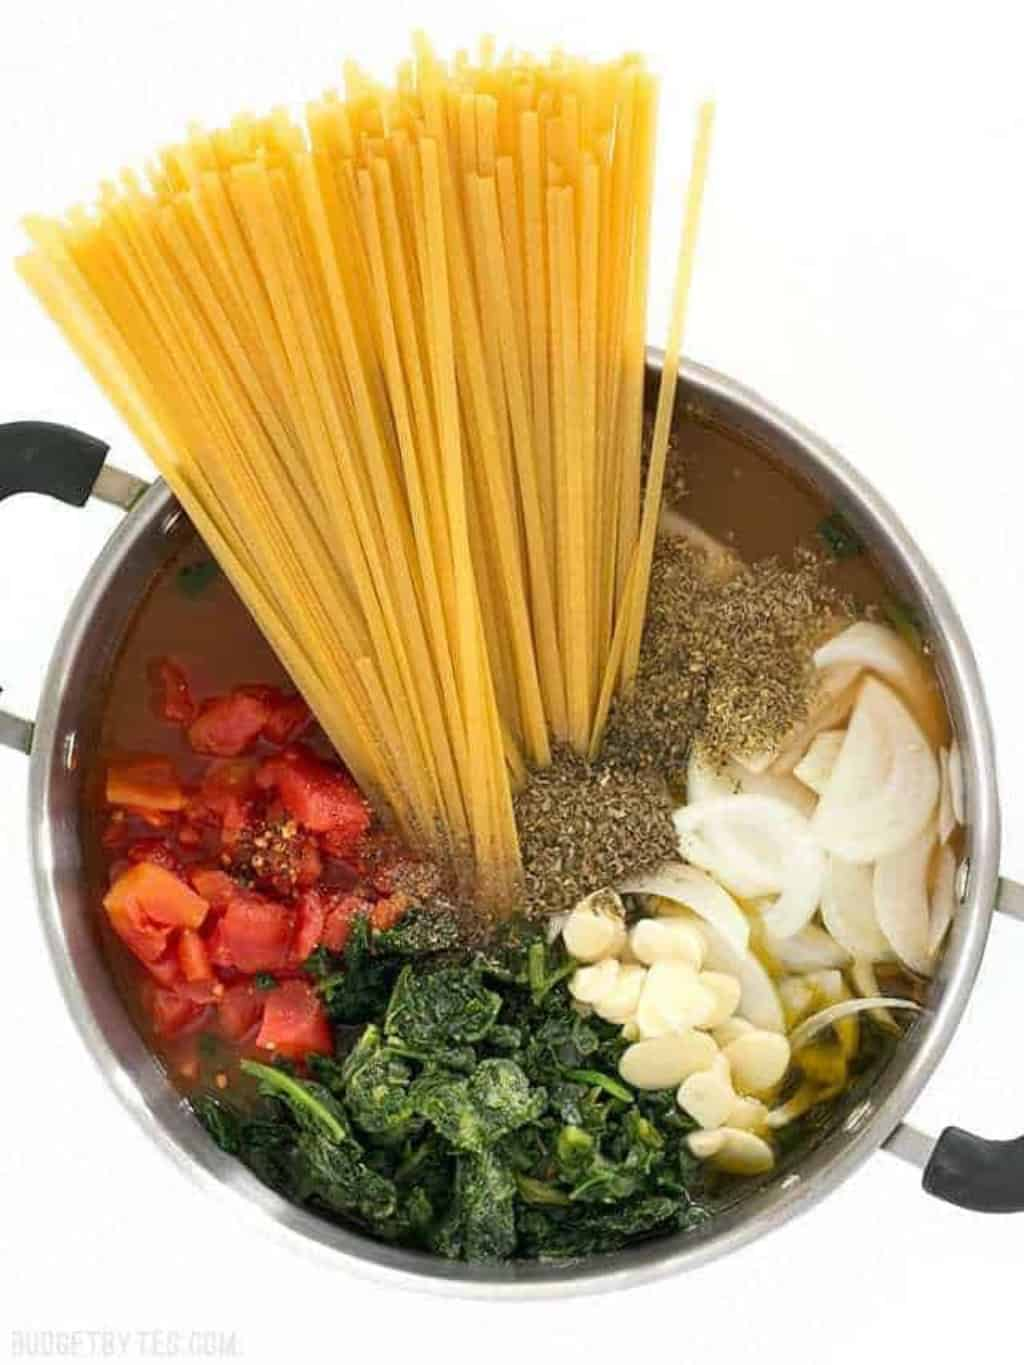 A pot of pasta, veggies and liquid being cooked in one pot